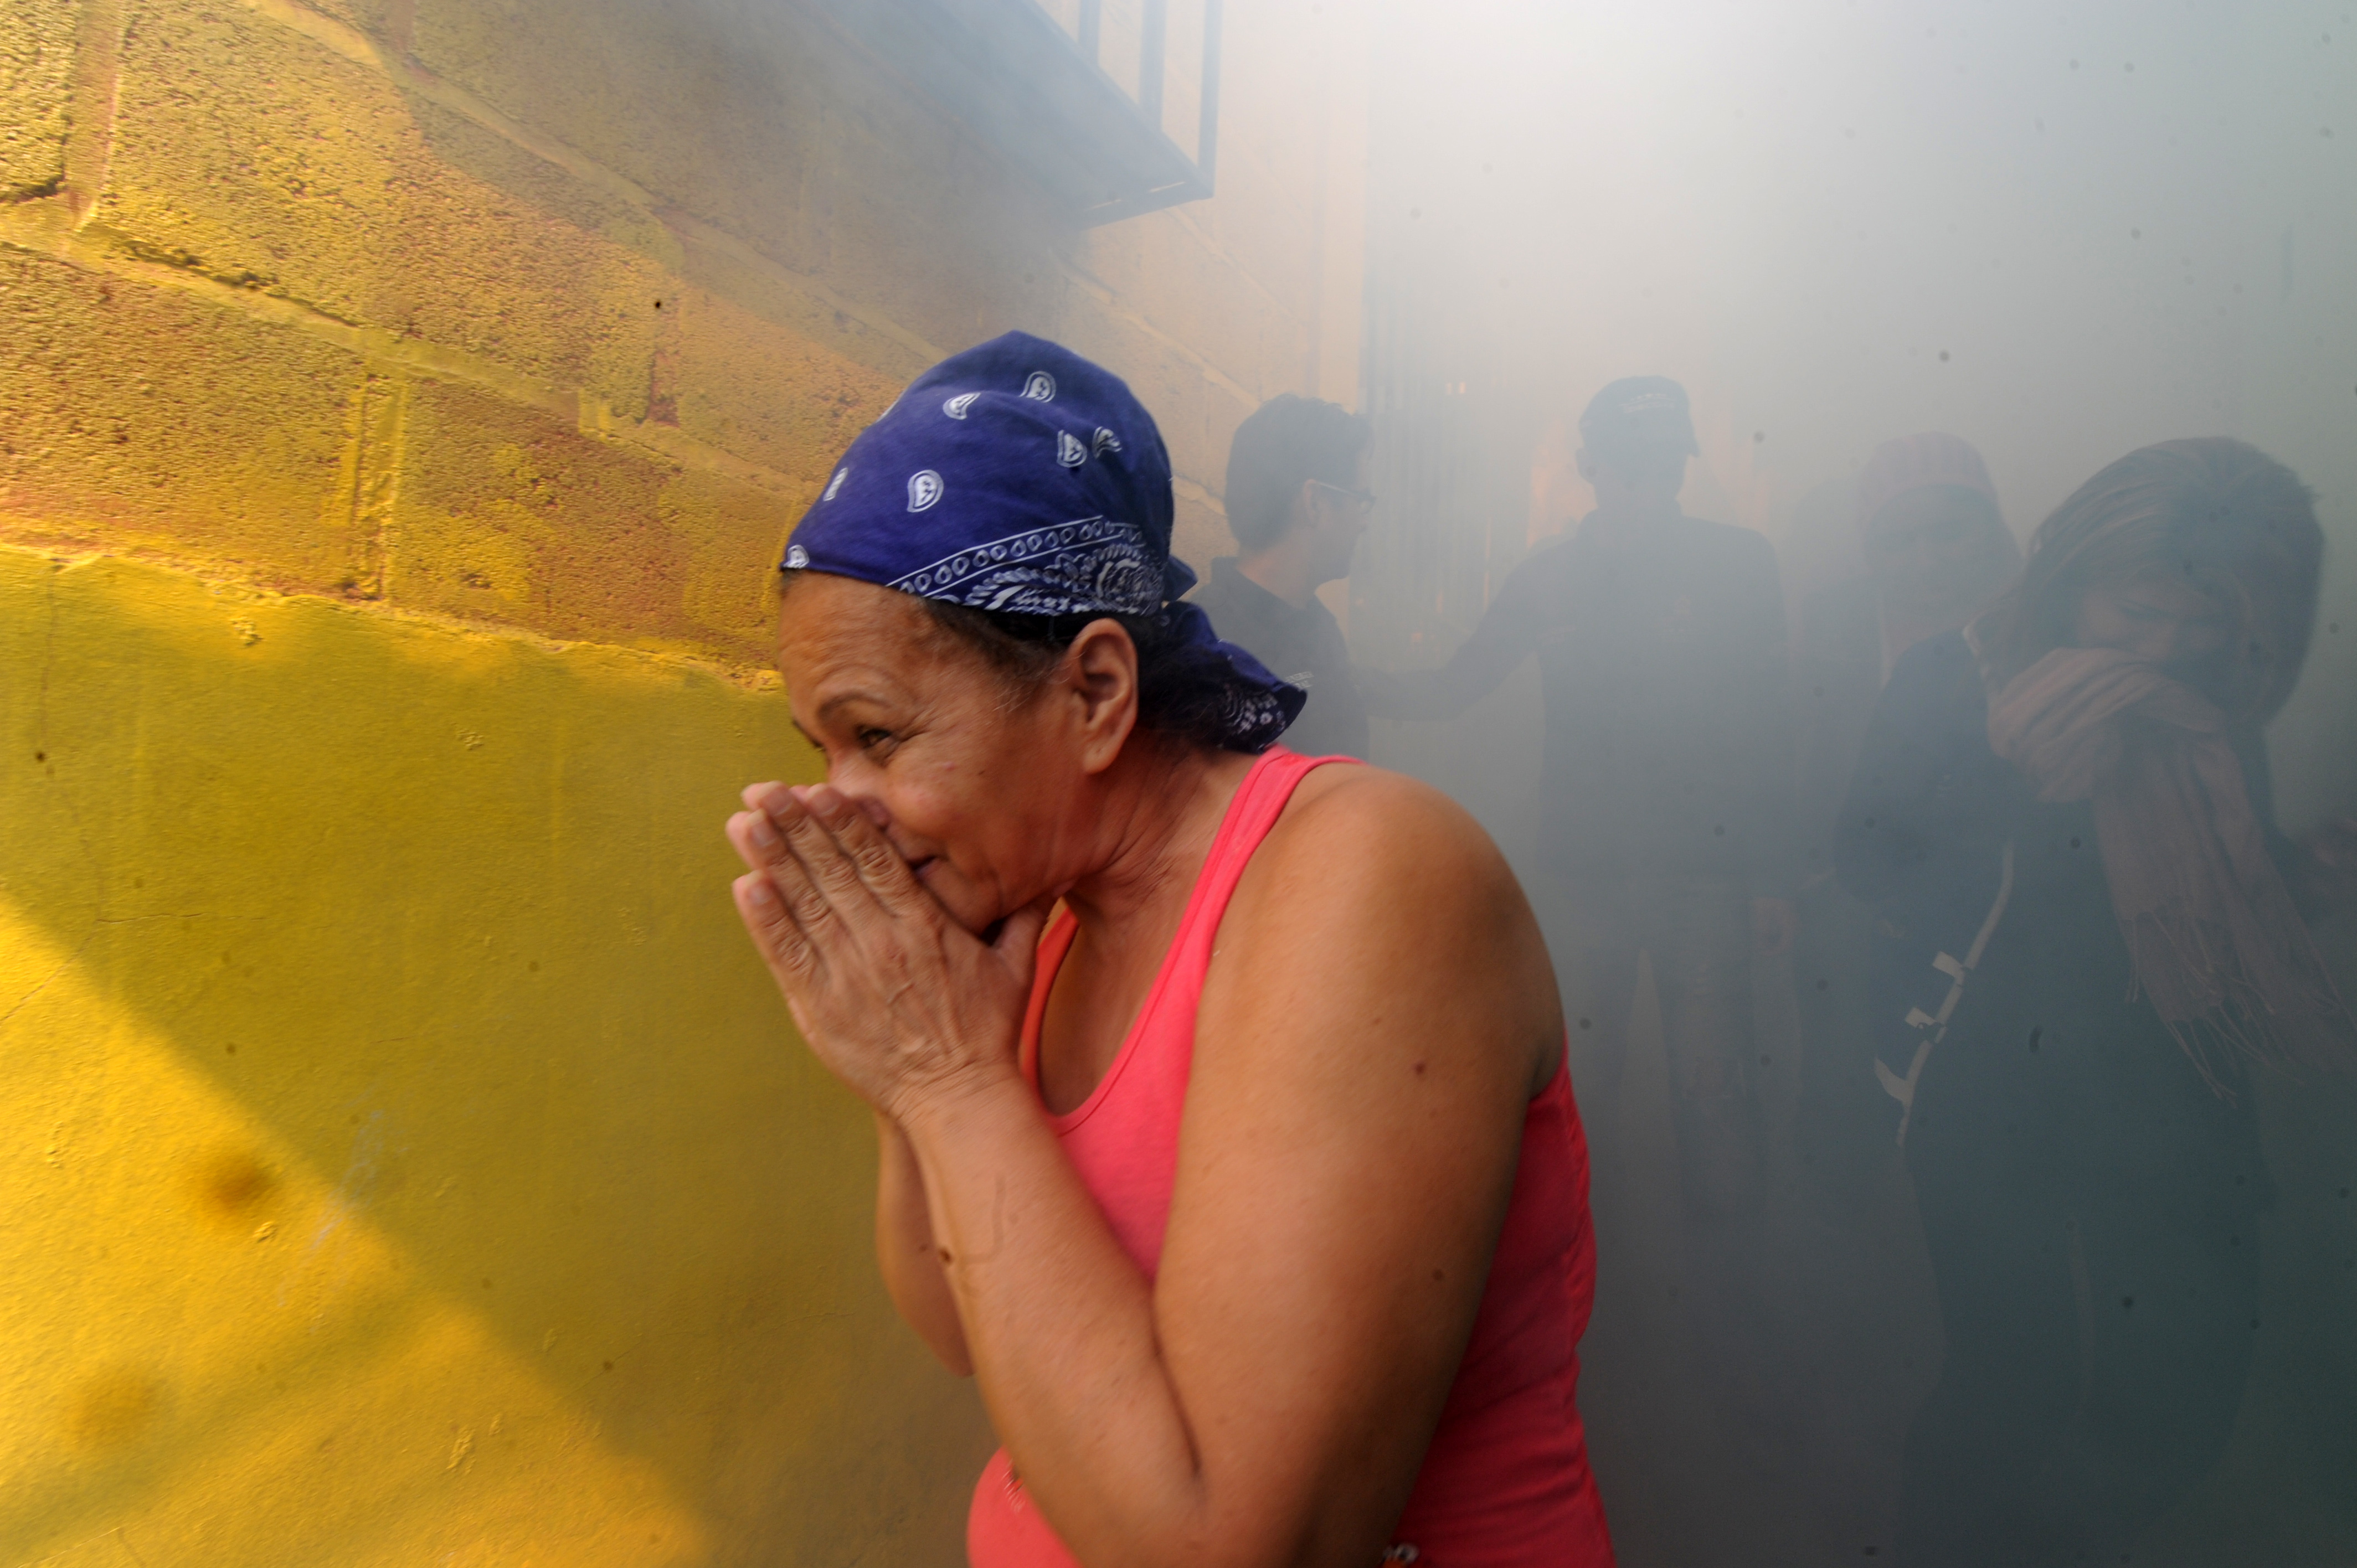 People help soldiers fumigate in the fight against Aedes Aegypti mosquito that transmits Zika virus, in Tegucigalpa on February 6, 2016.